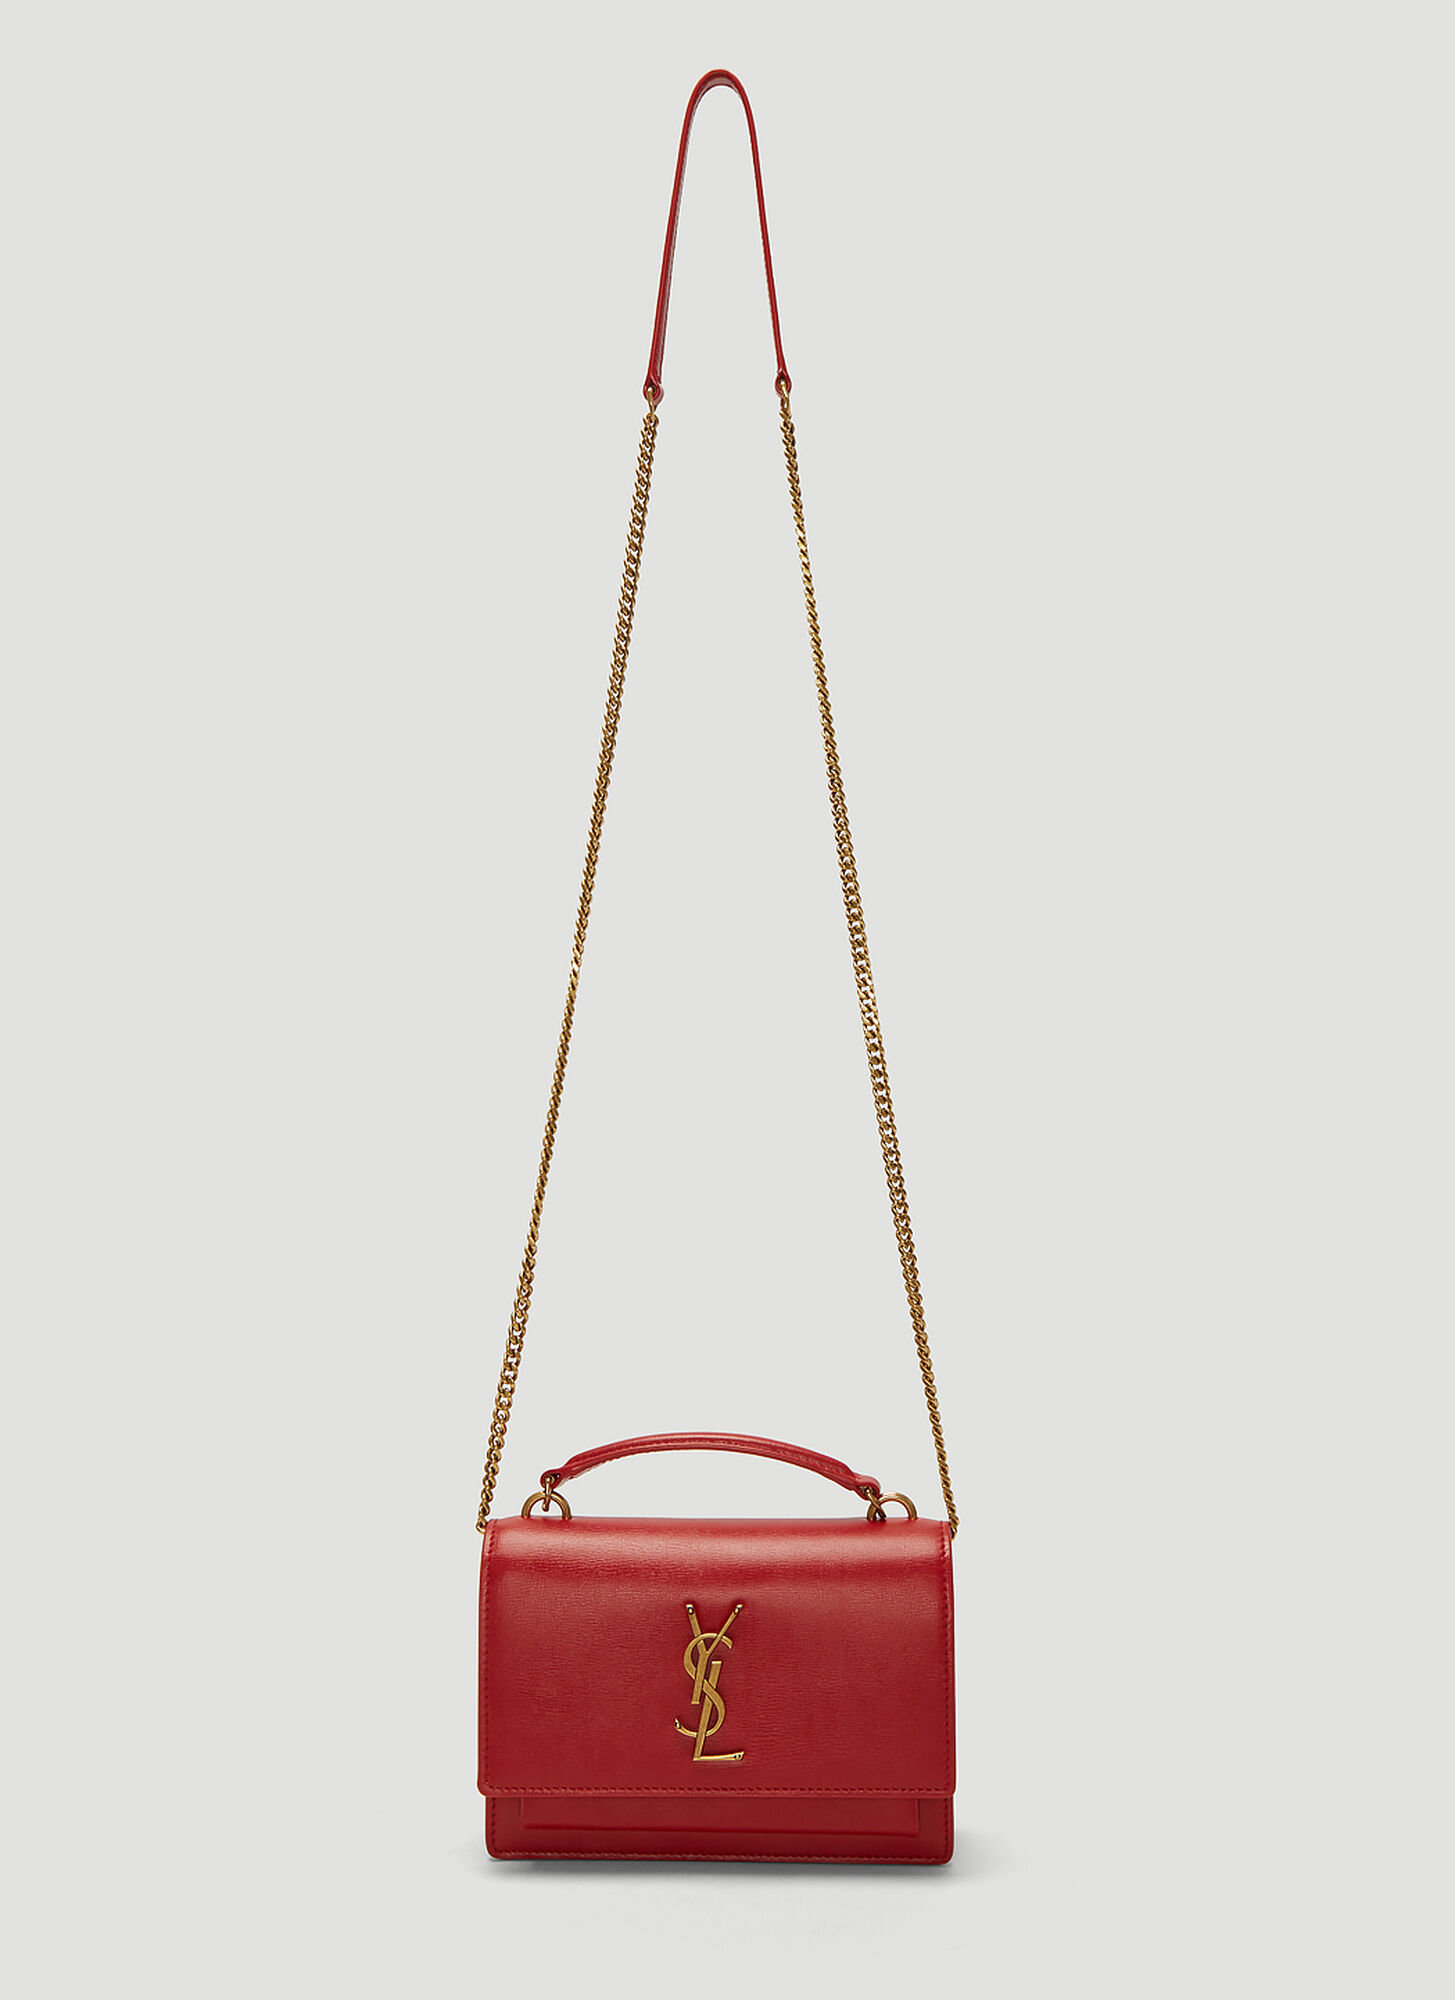 Saint Laurent Sunset Monogram Chain Bag in Red